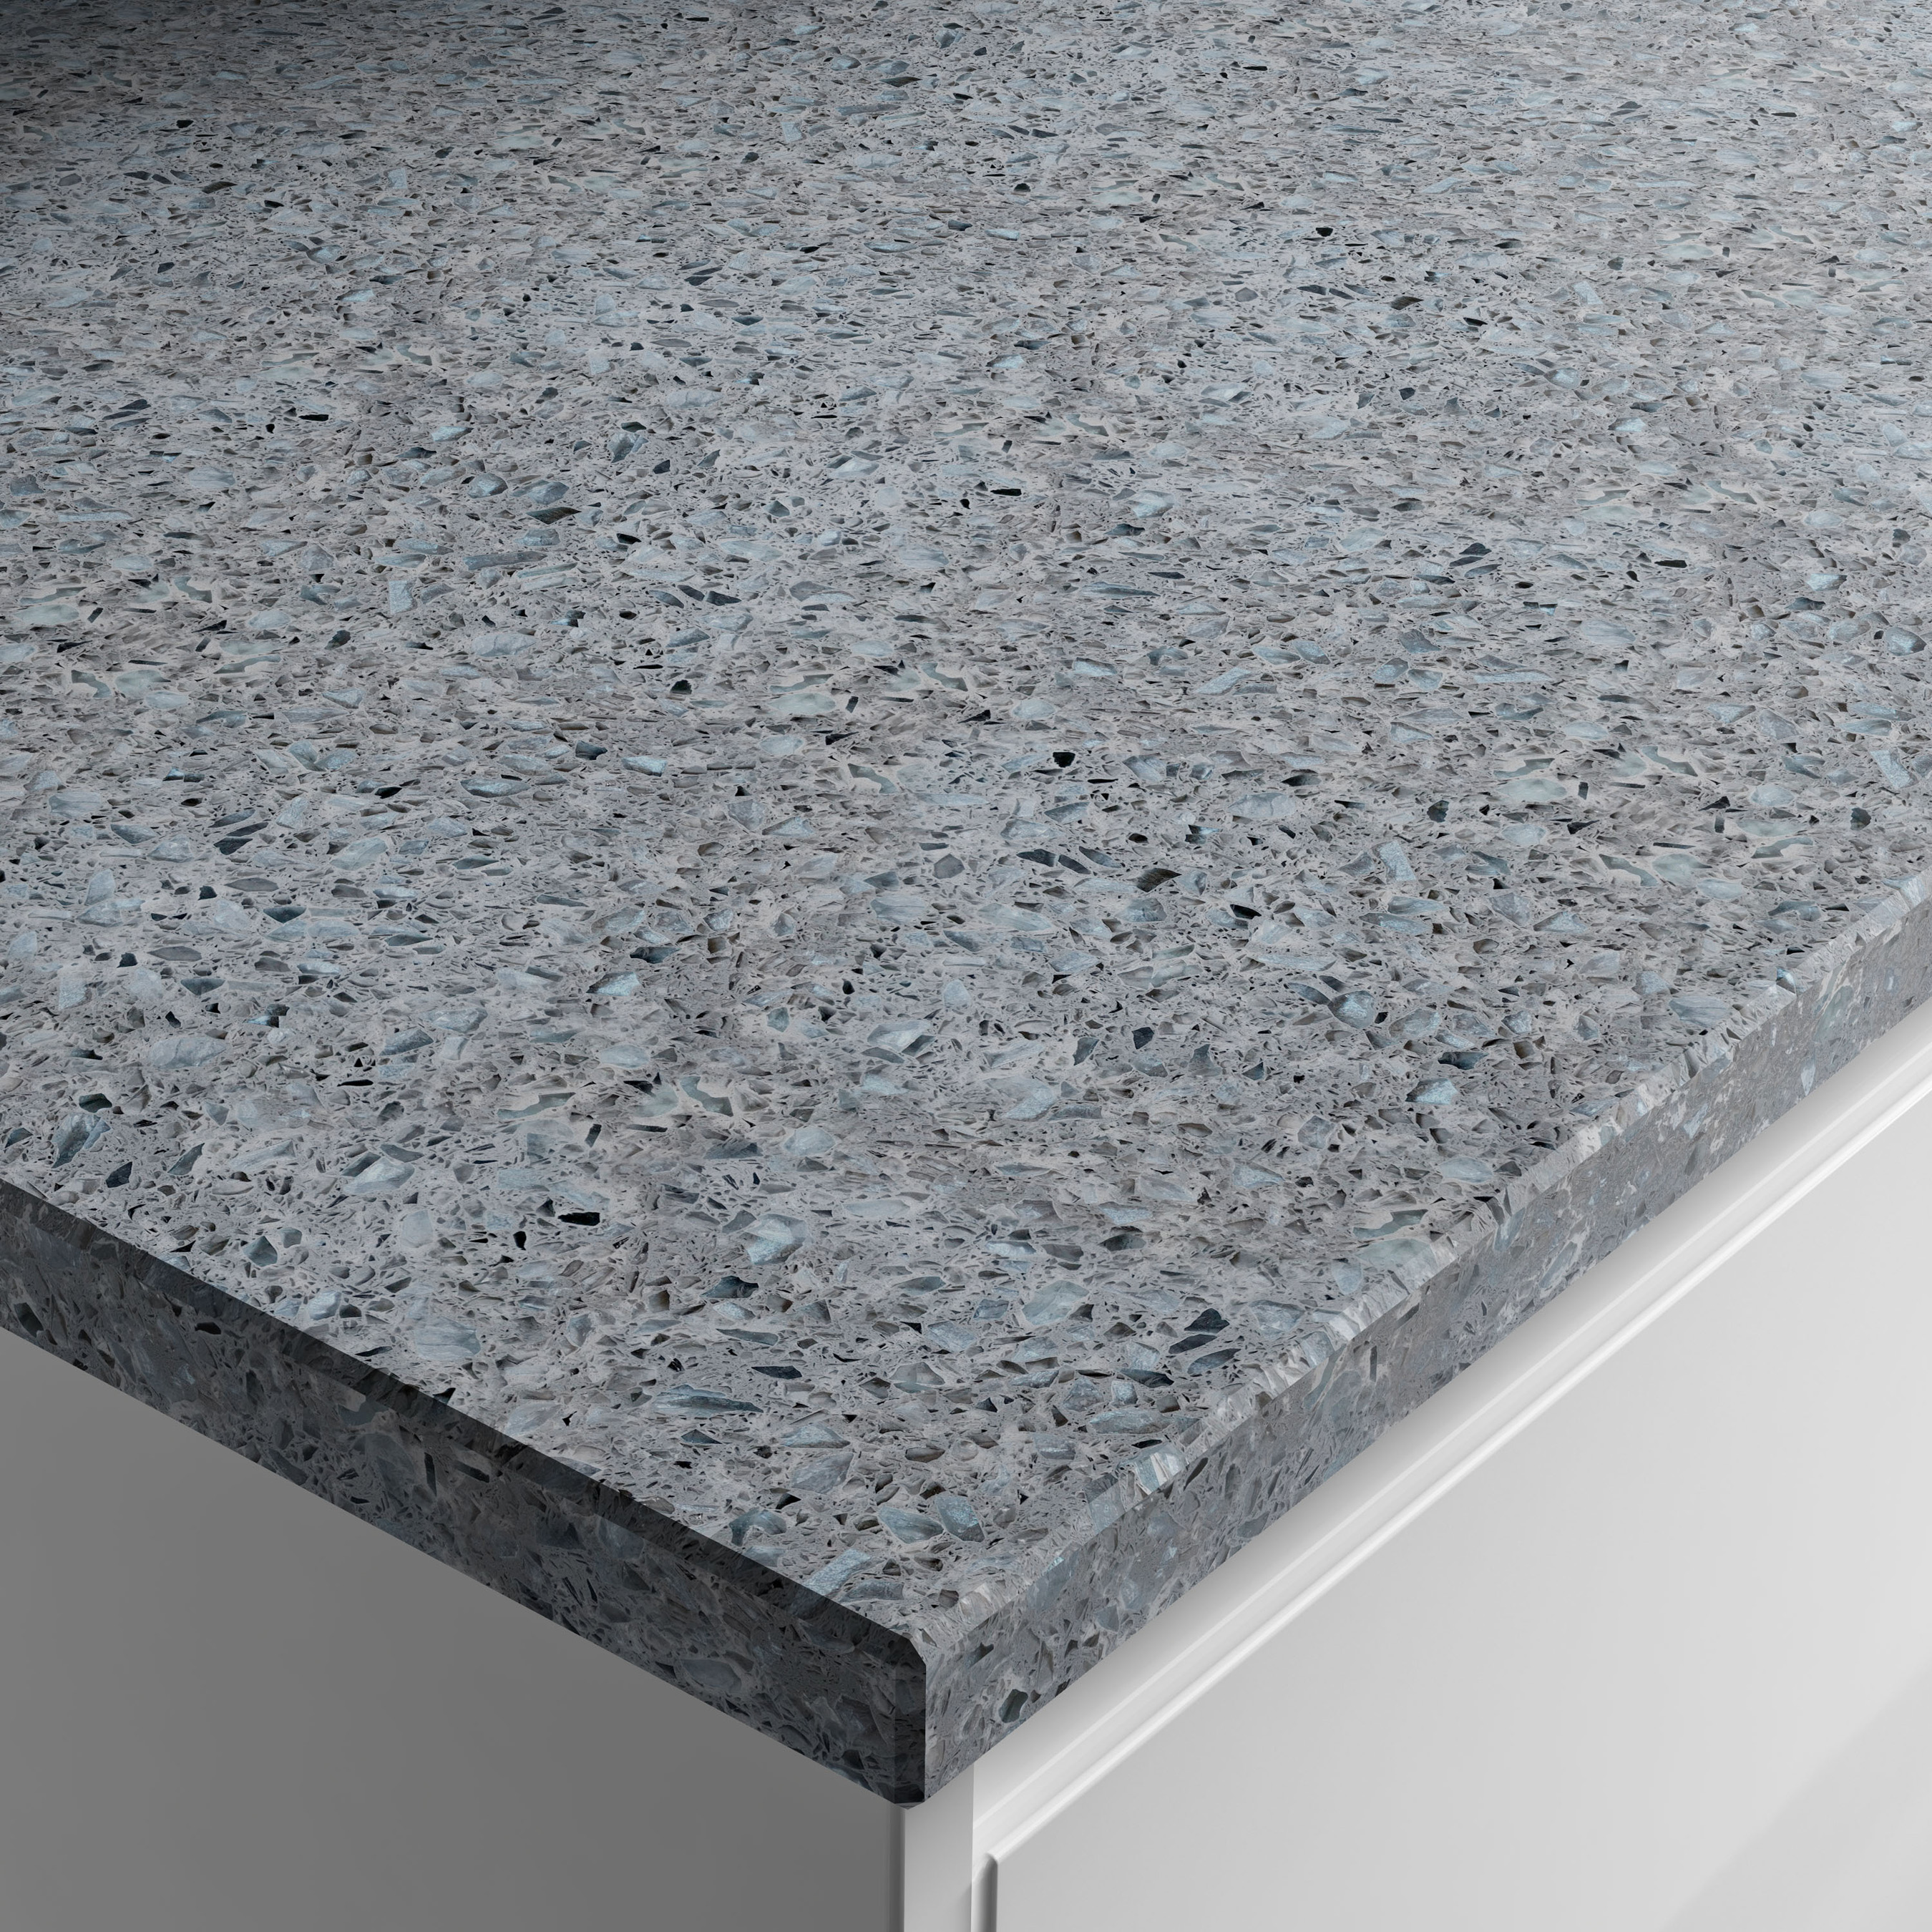 Apollo Recycled Glass Worktop, Blue Star, available with kitchens from Wickes (Wickes/PA)